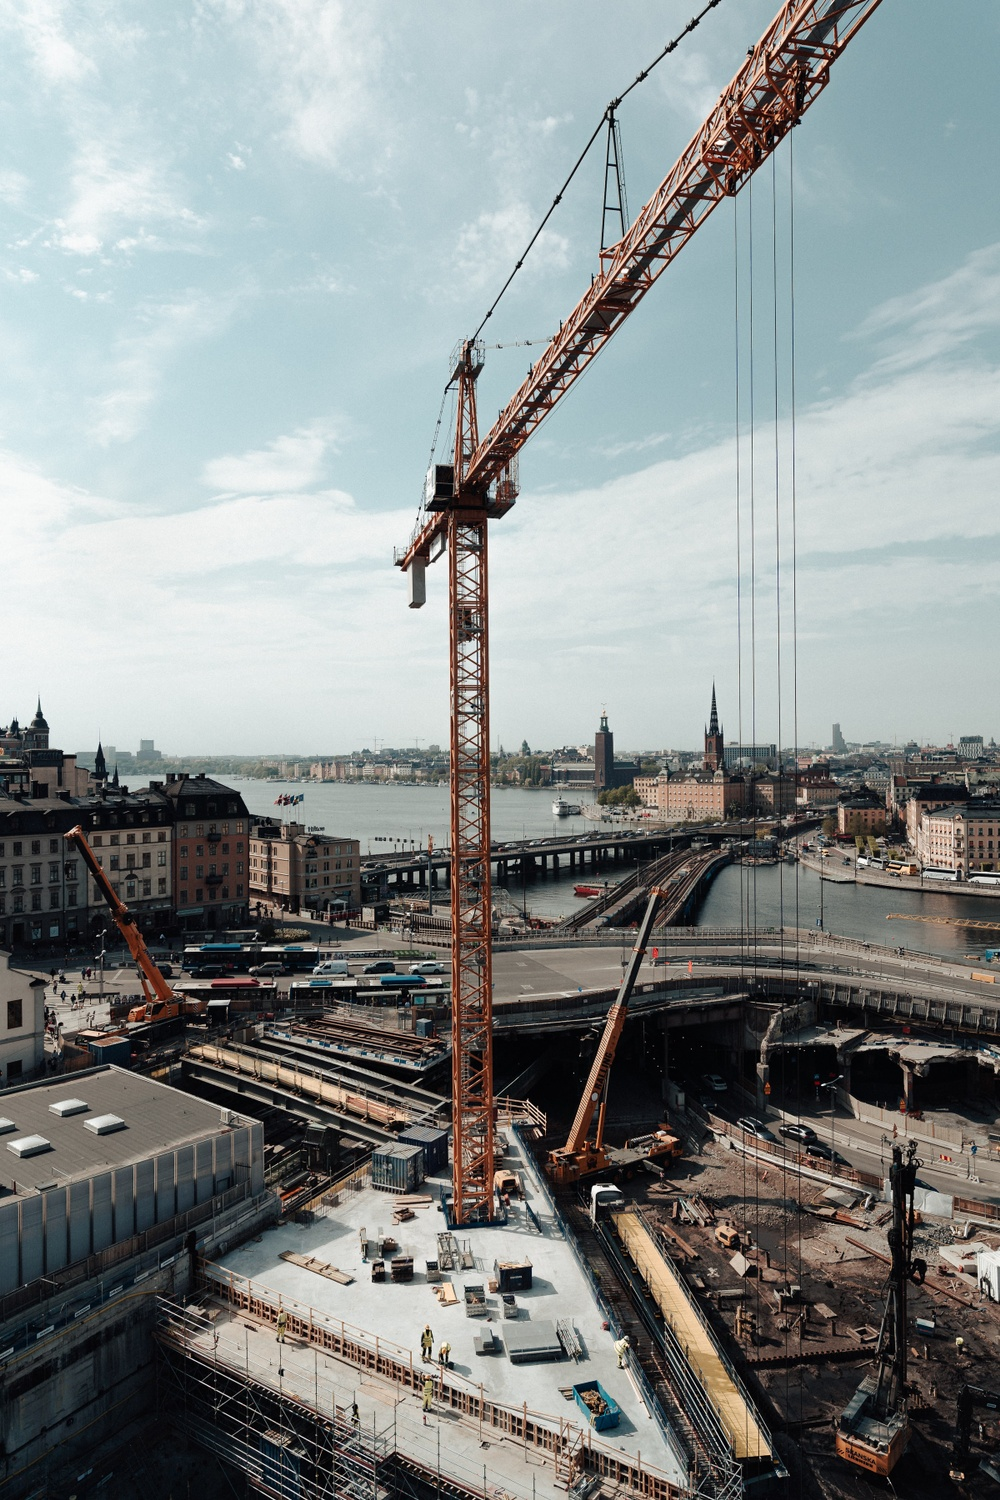 Construction site, Slussen